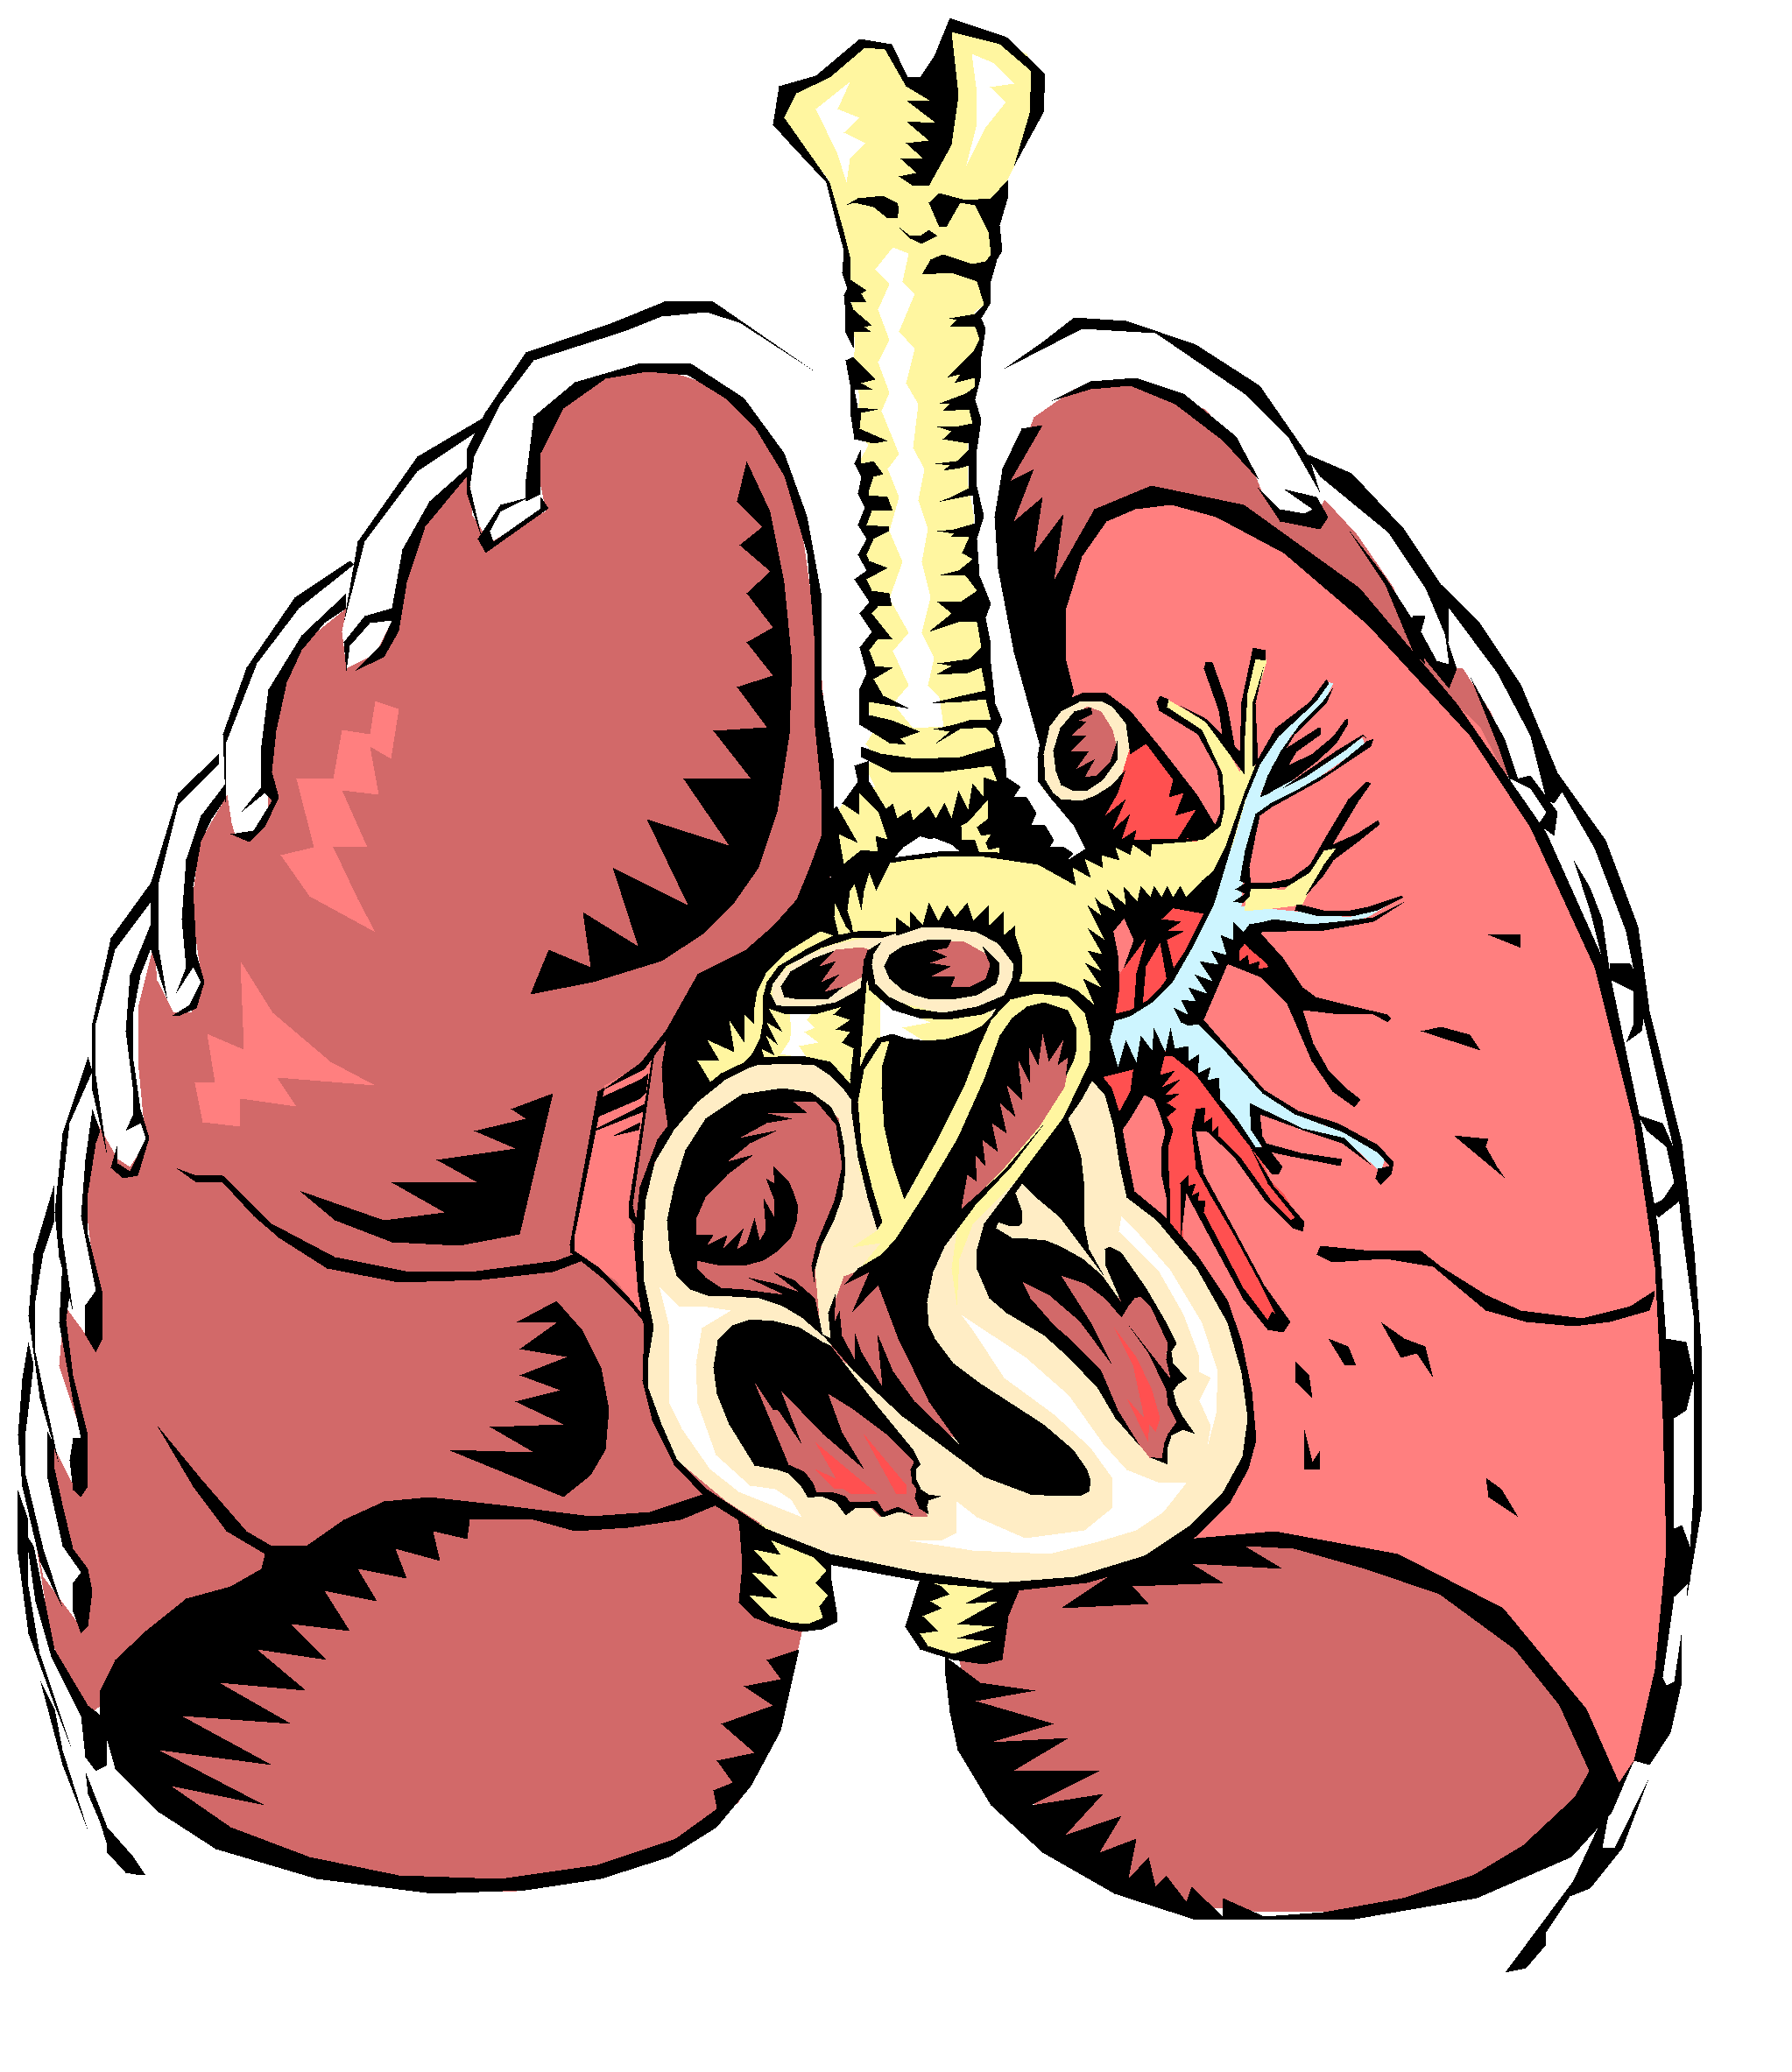 banner royalty free download System drawing at getdrawings. Biology clipart respiratory disease.